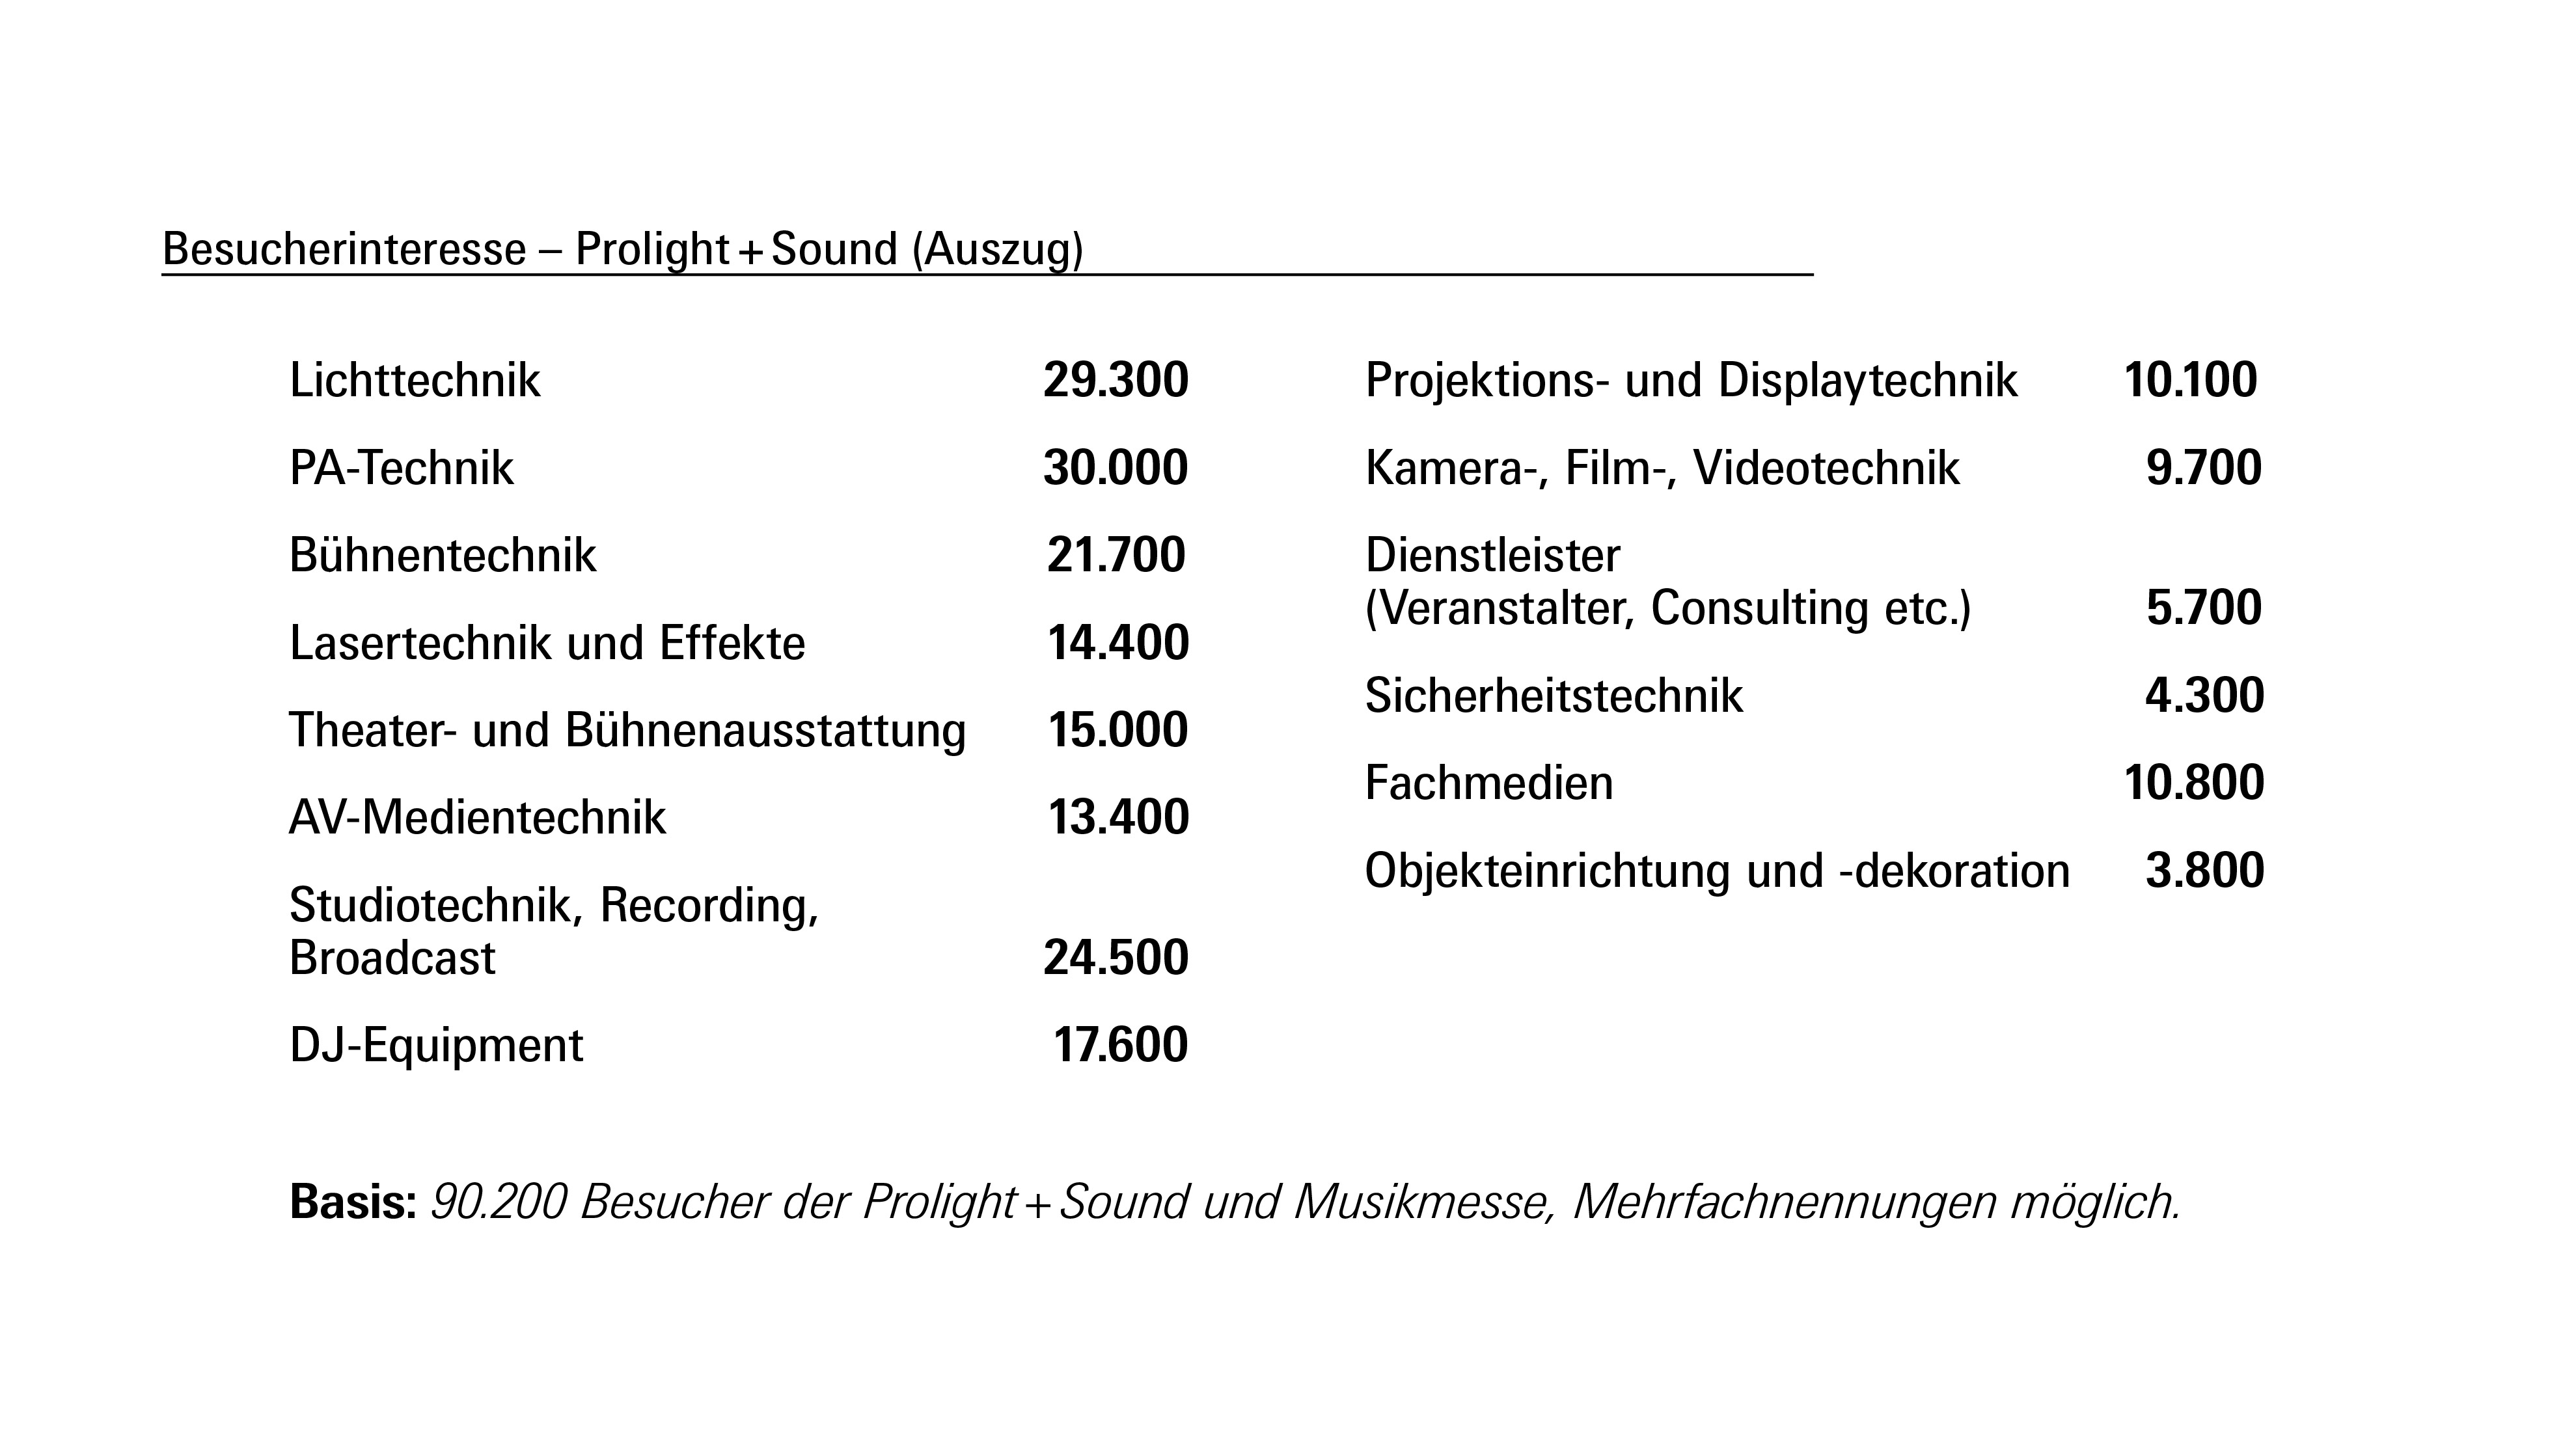 Prolight + Sound 2018: Besucherinteresse